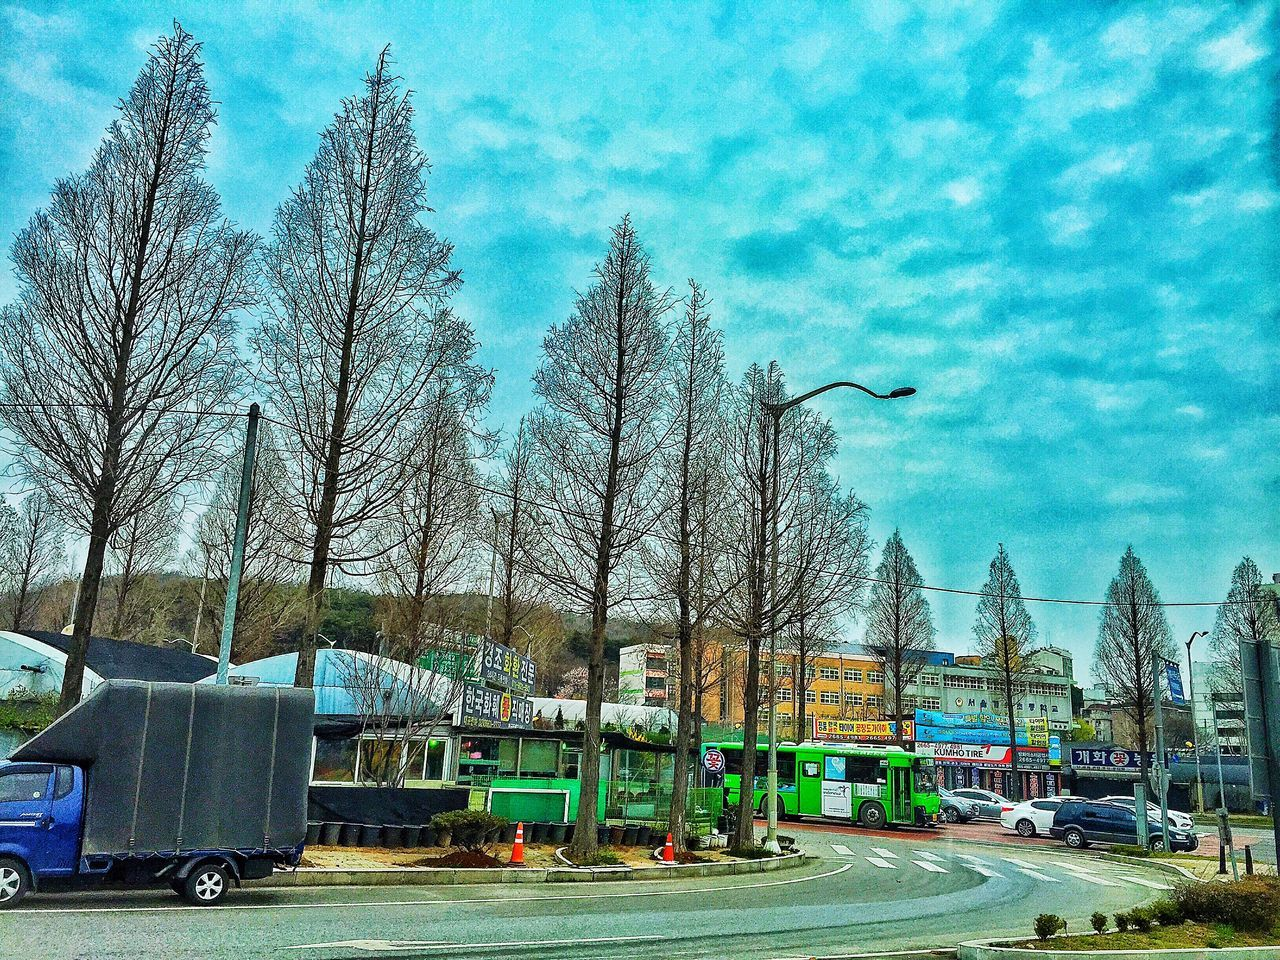 Rural Scene Original Experiences Feel The Journey Korea Tree Sky And Clouds No People Tranport Suburban Streets Shops